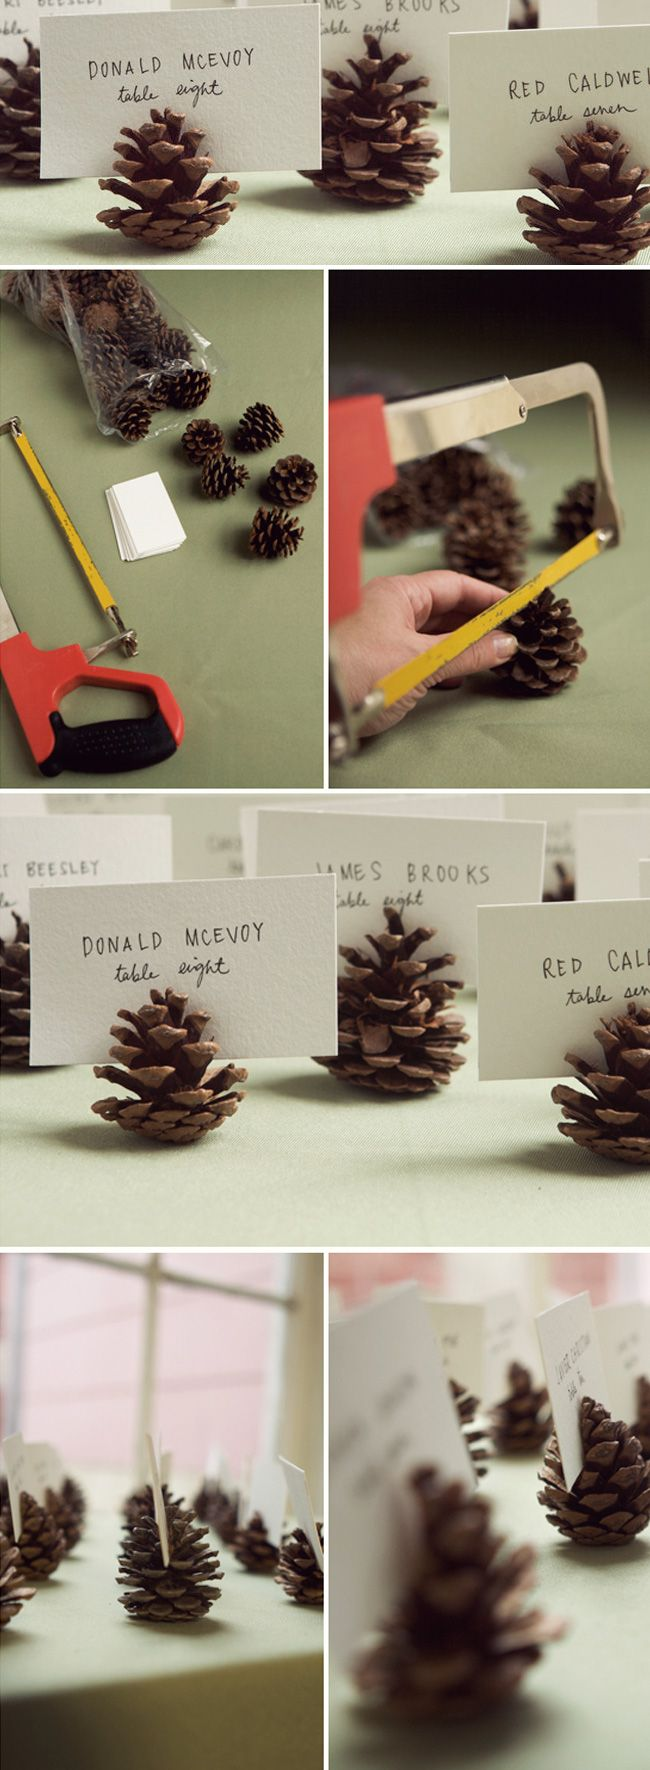 DIY Pinecones Place Card Fall Wedding Idea